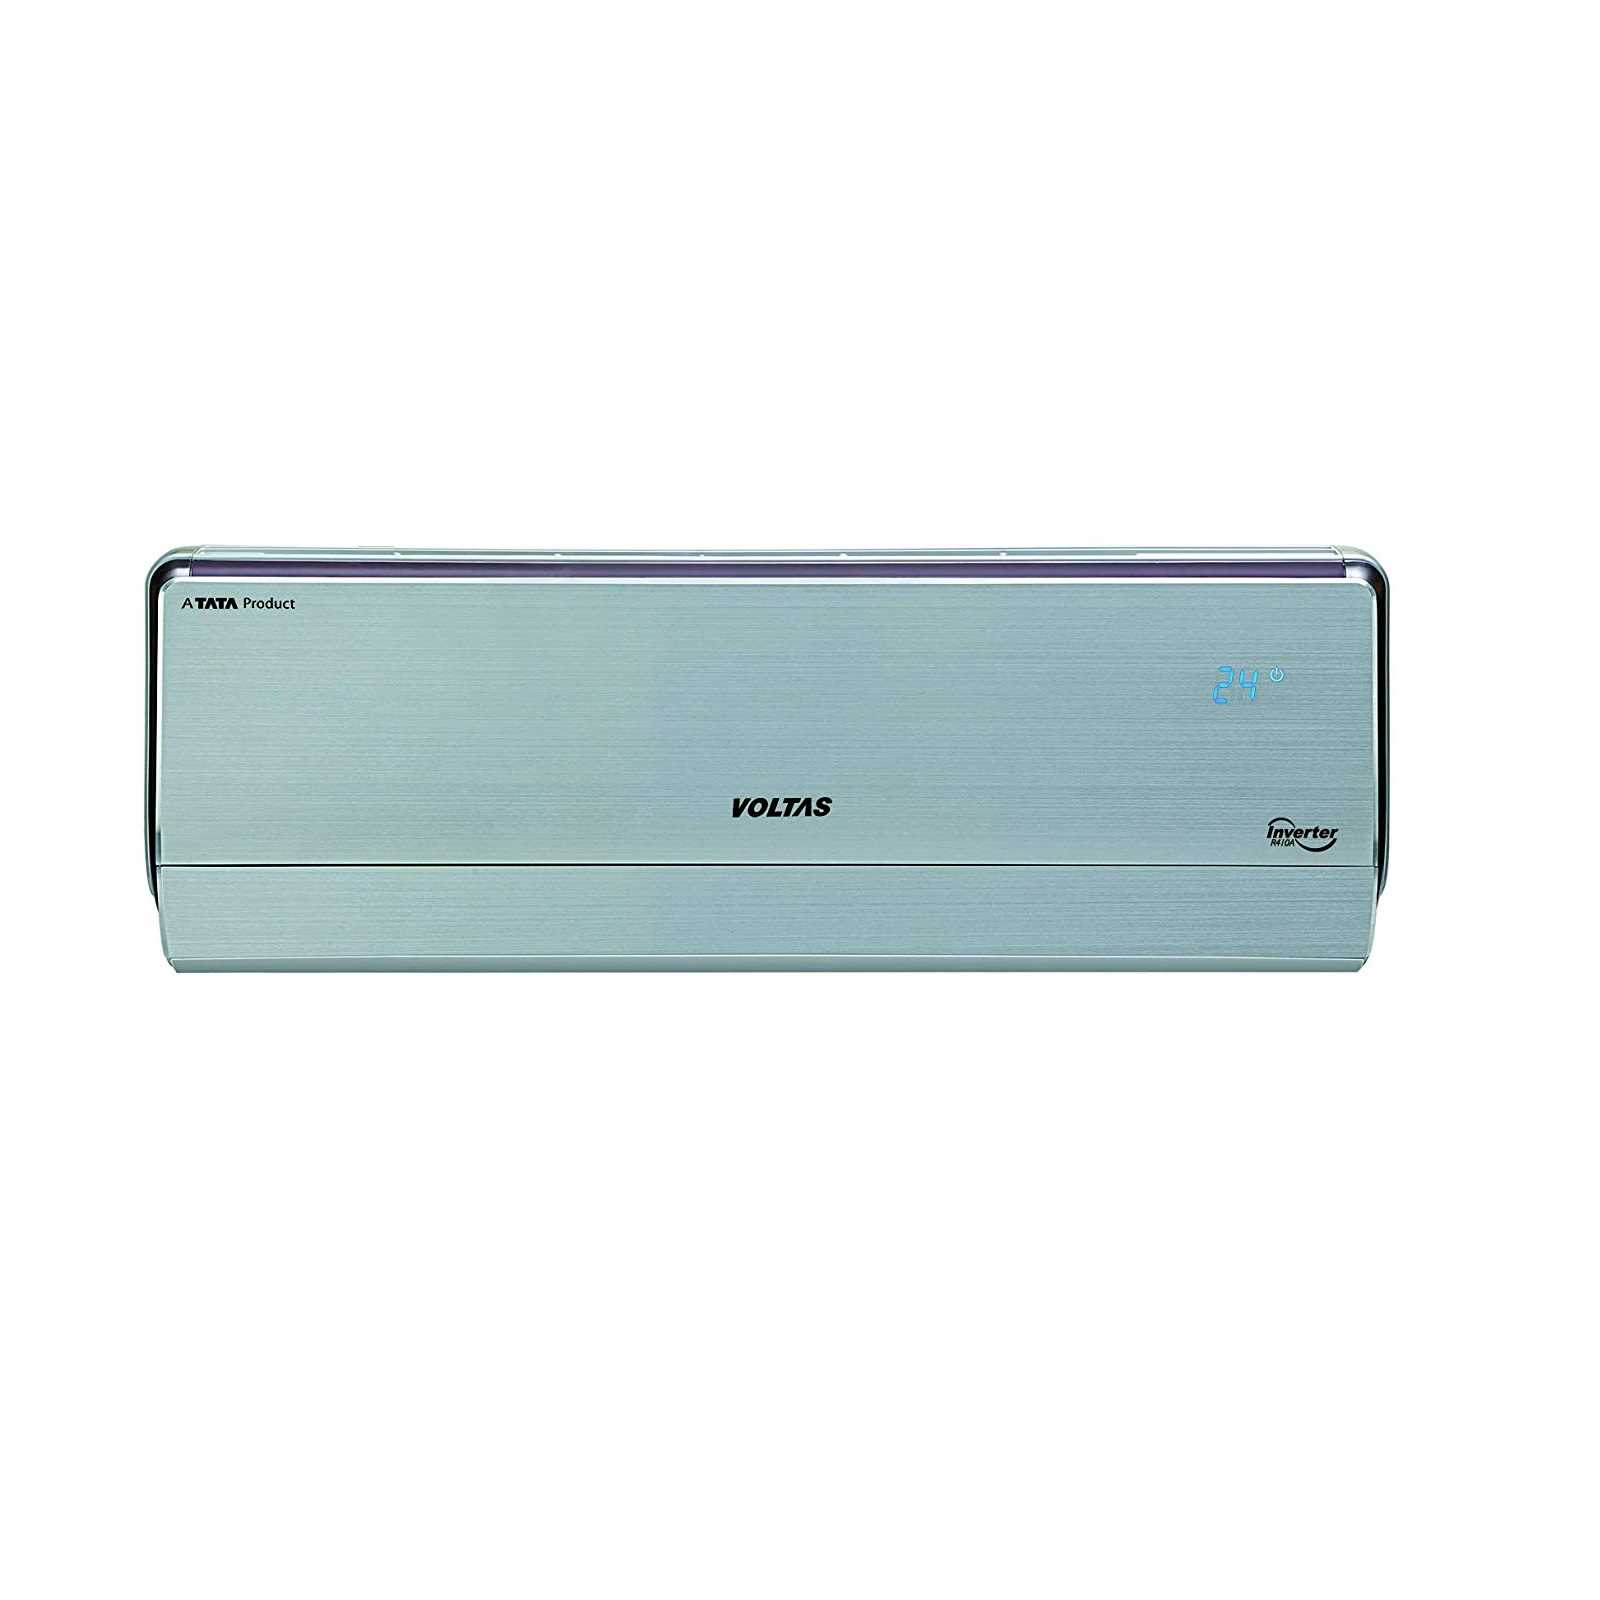 Voltas 125VH Crown AW 1 Ton 5 Star Inverter Split AC